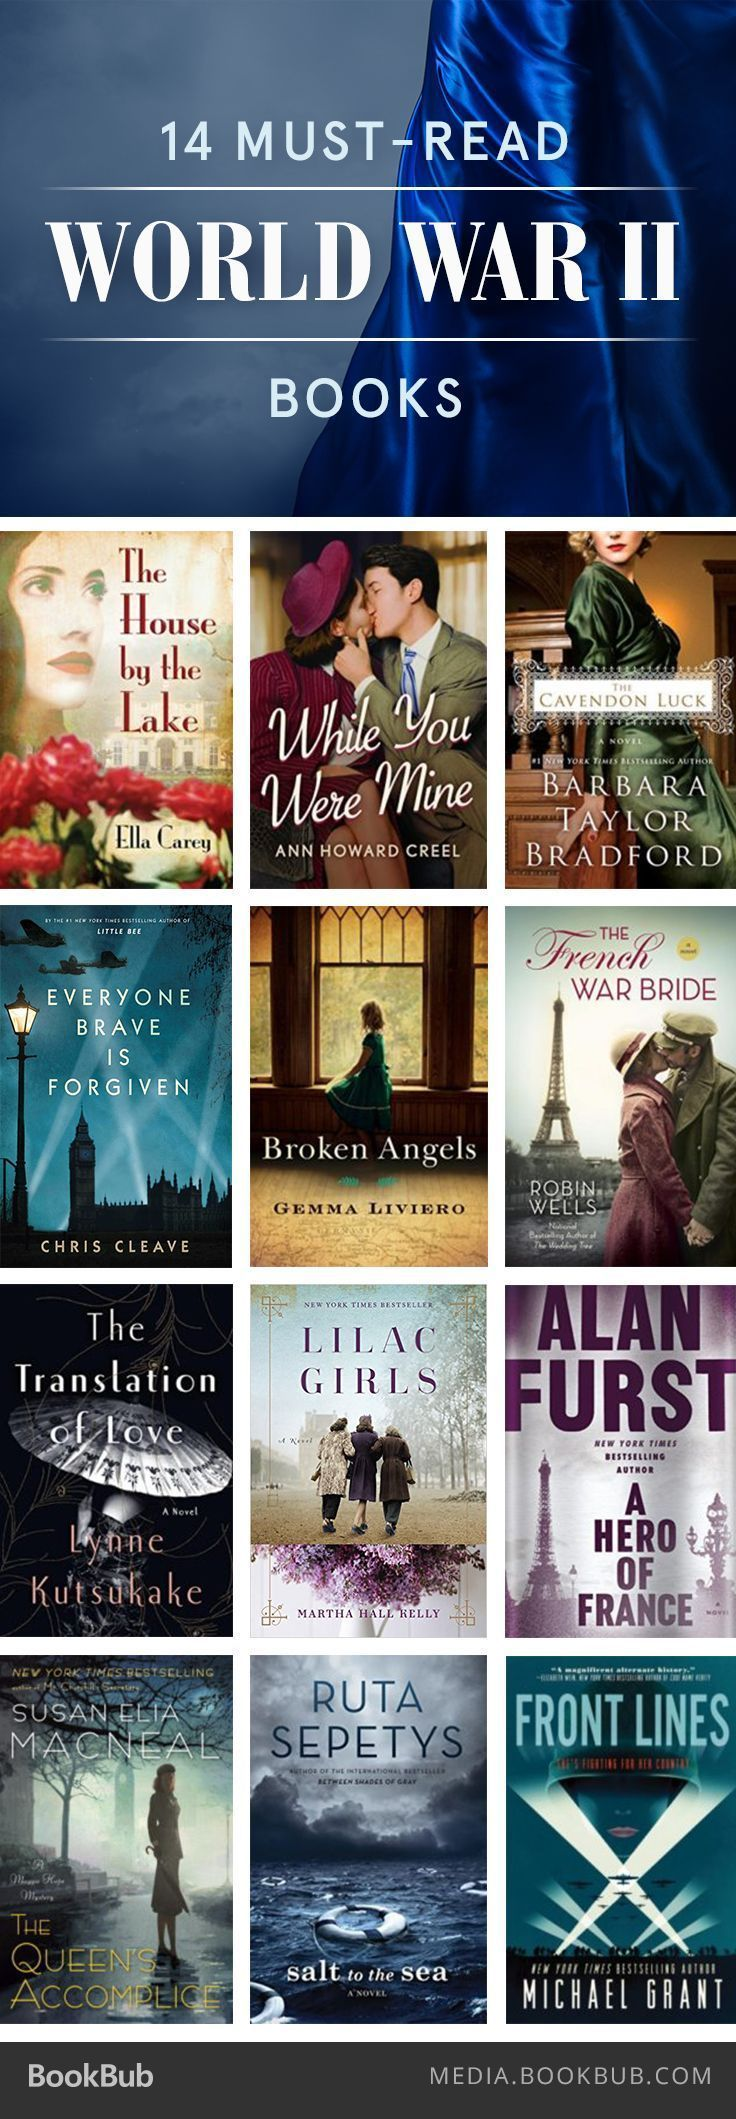 14 books to read about World War II, including Lilac Girls by Martha Hall Kelly.